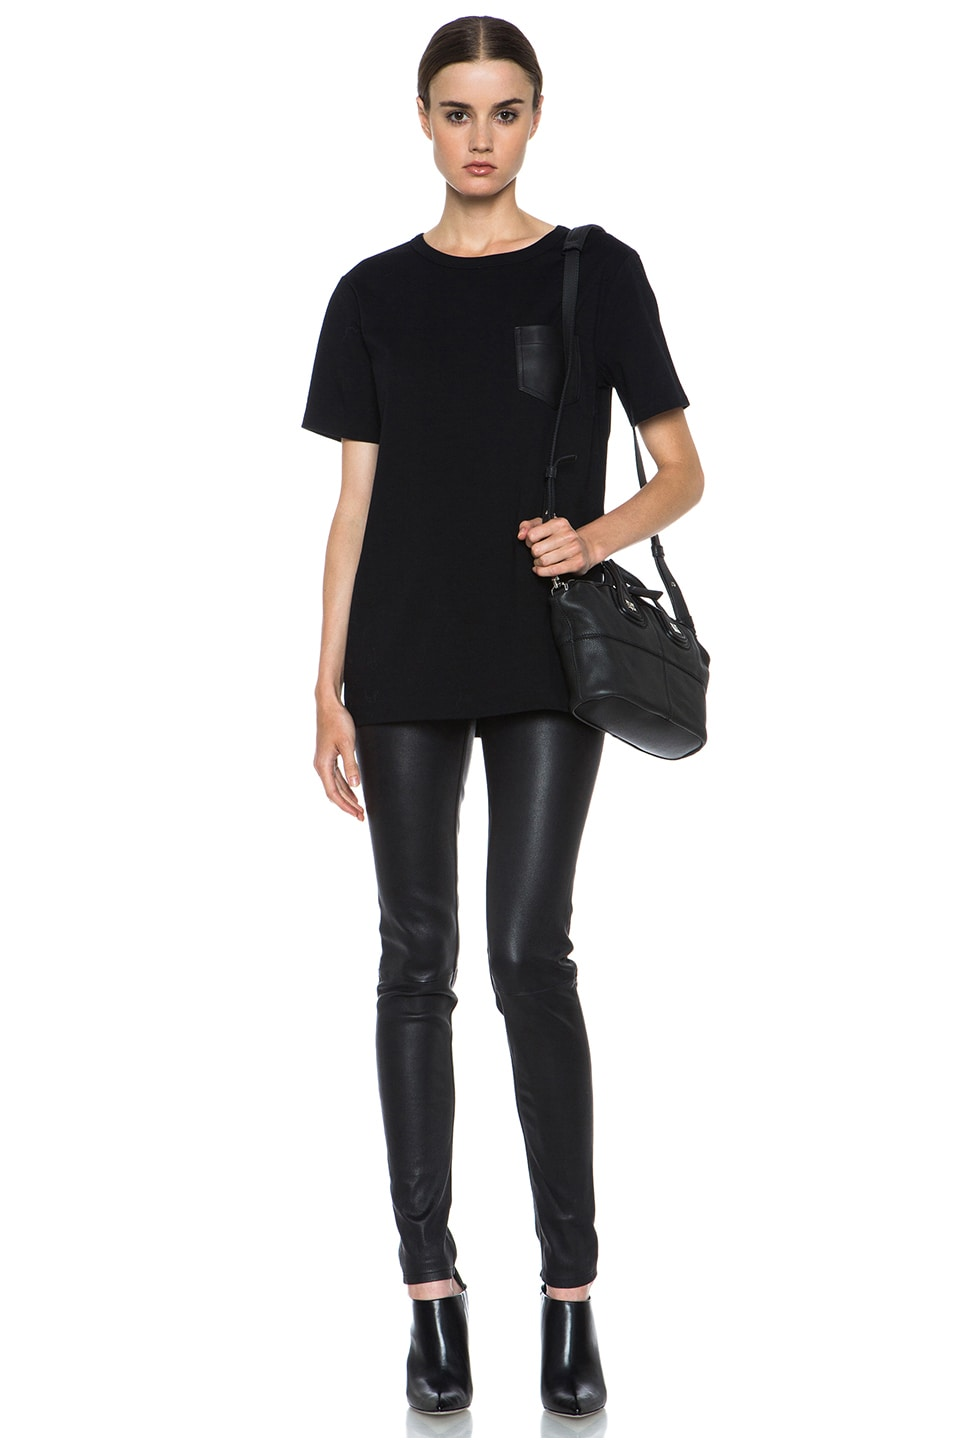 Image 5 of T by Alexander Wang Supima Jersey Tee with Leather Pocket in Black